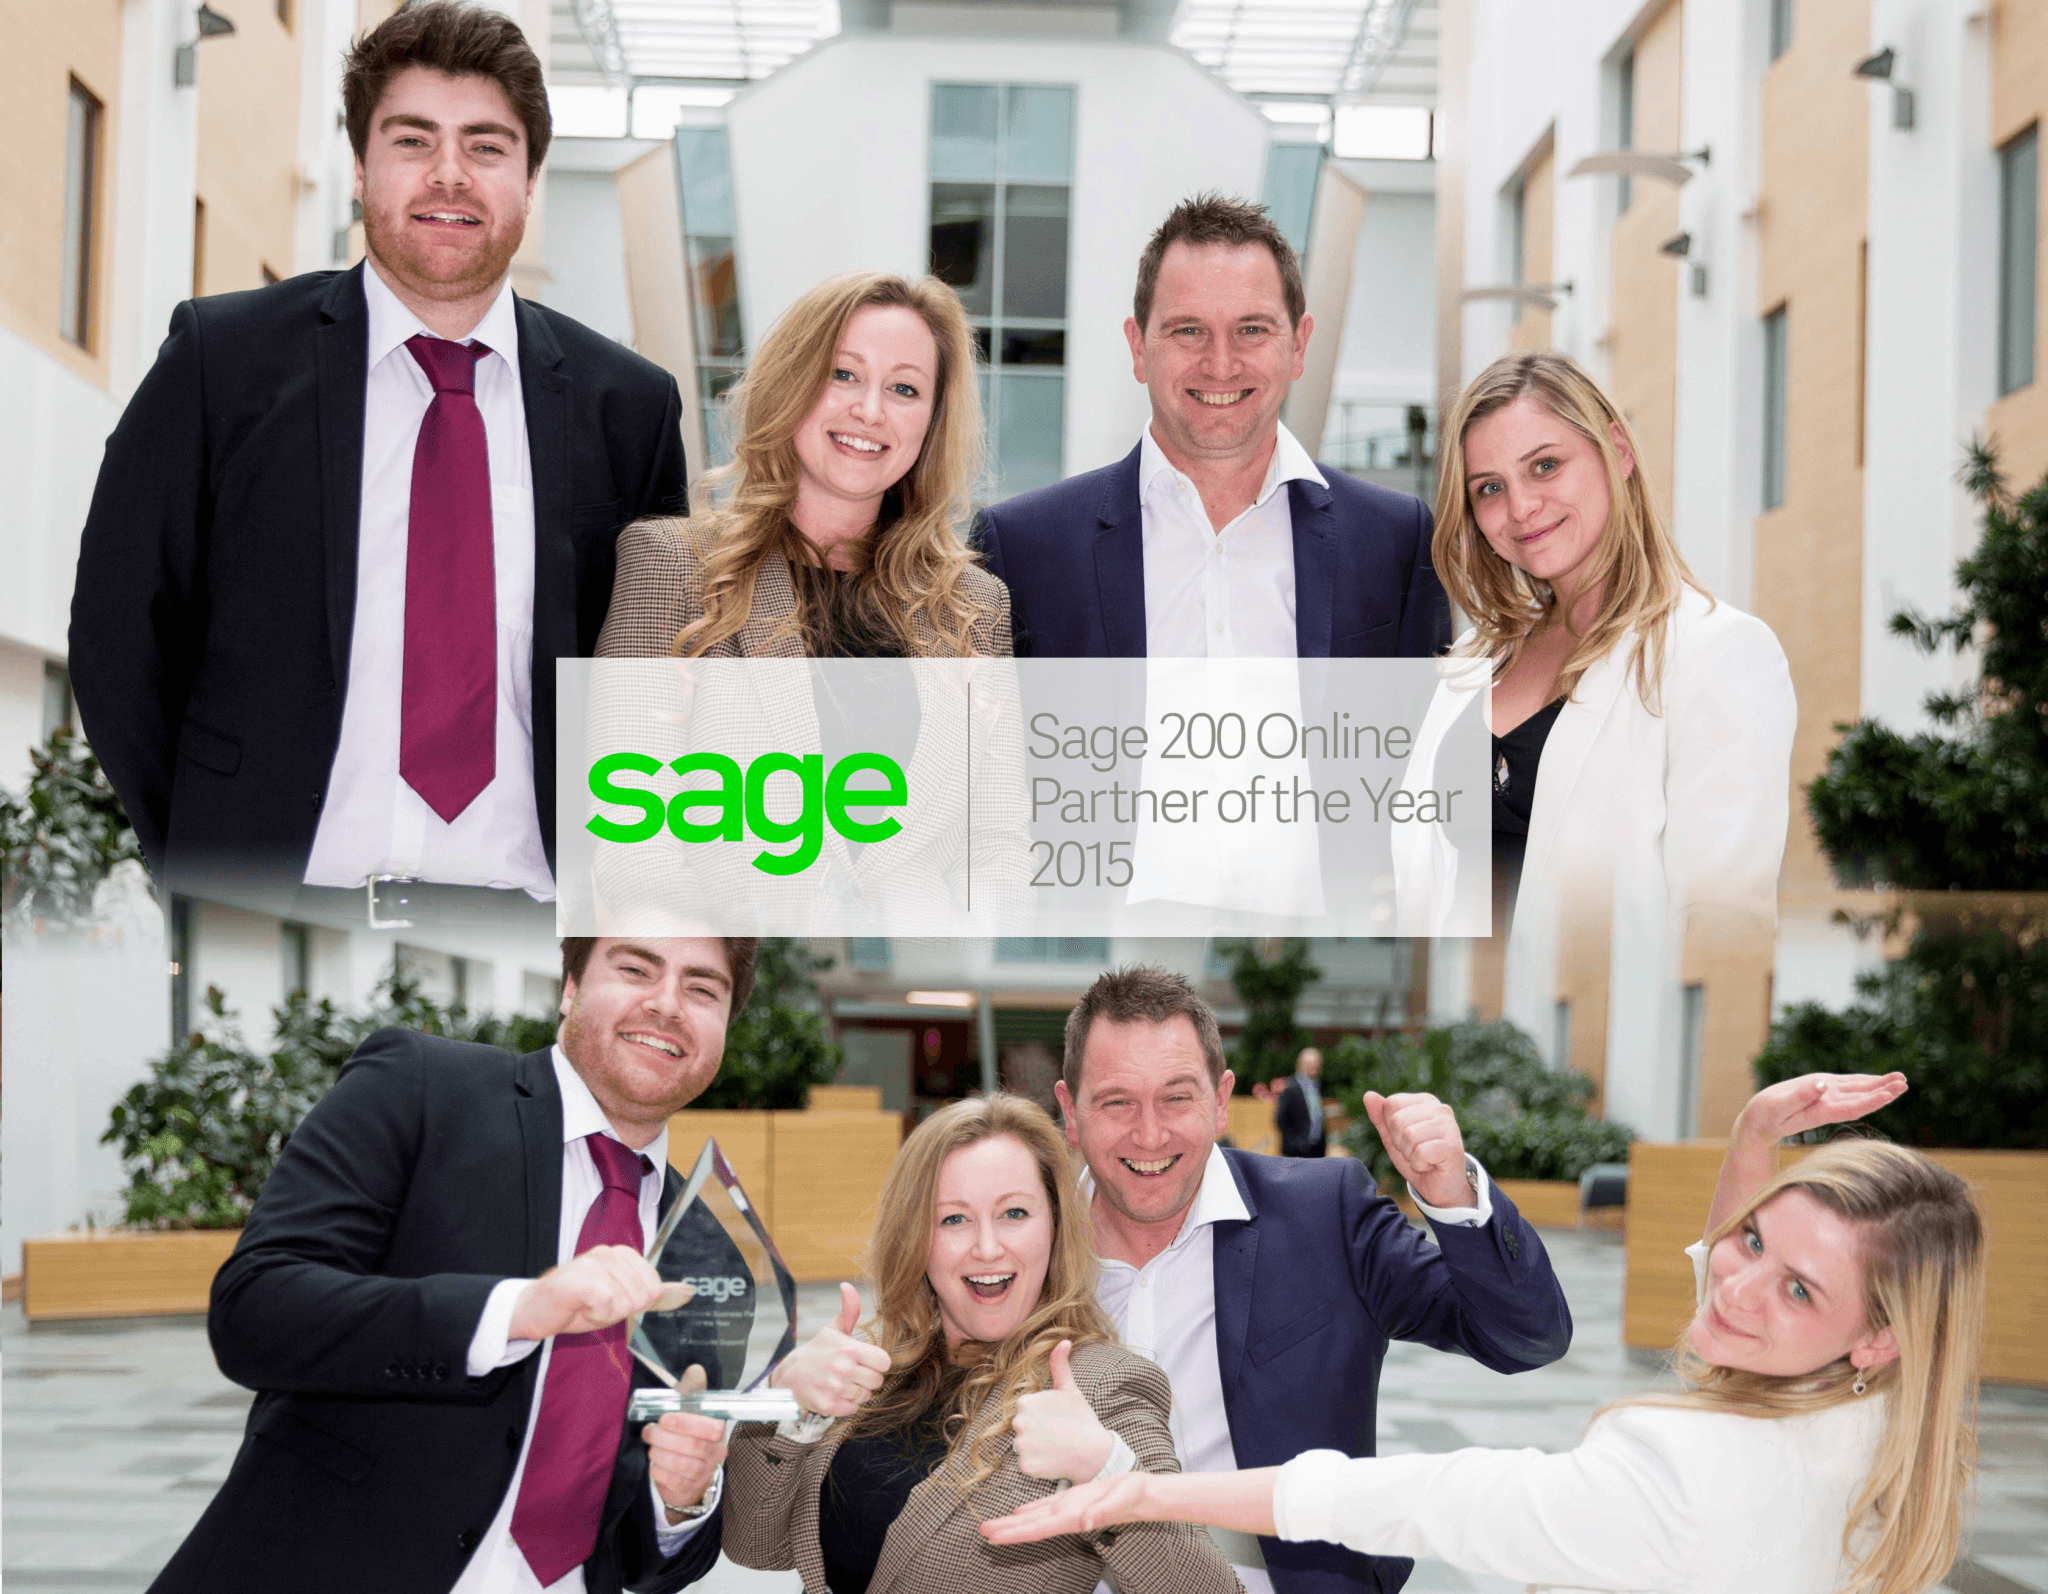 itas award winning Sage Partner